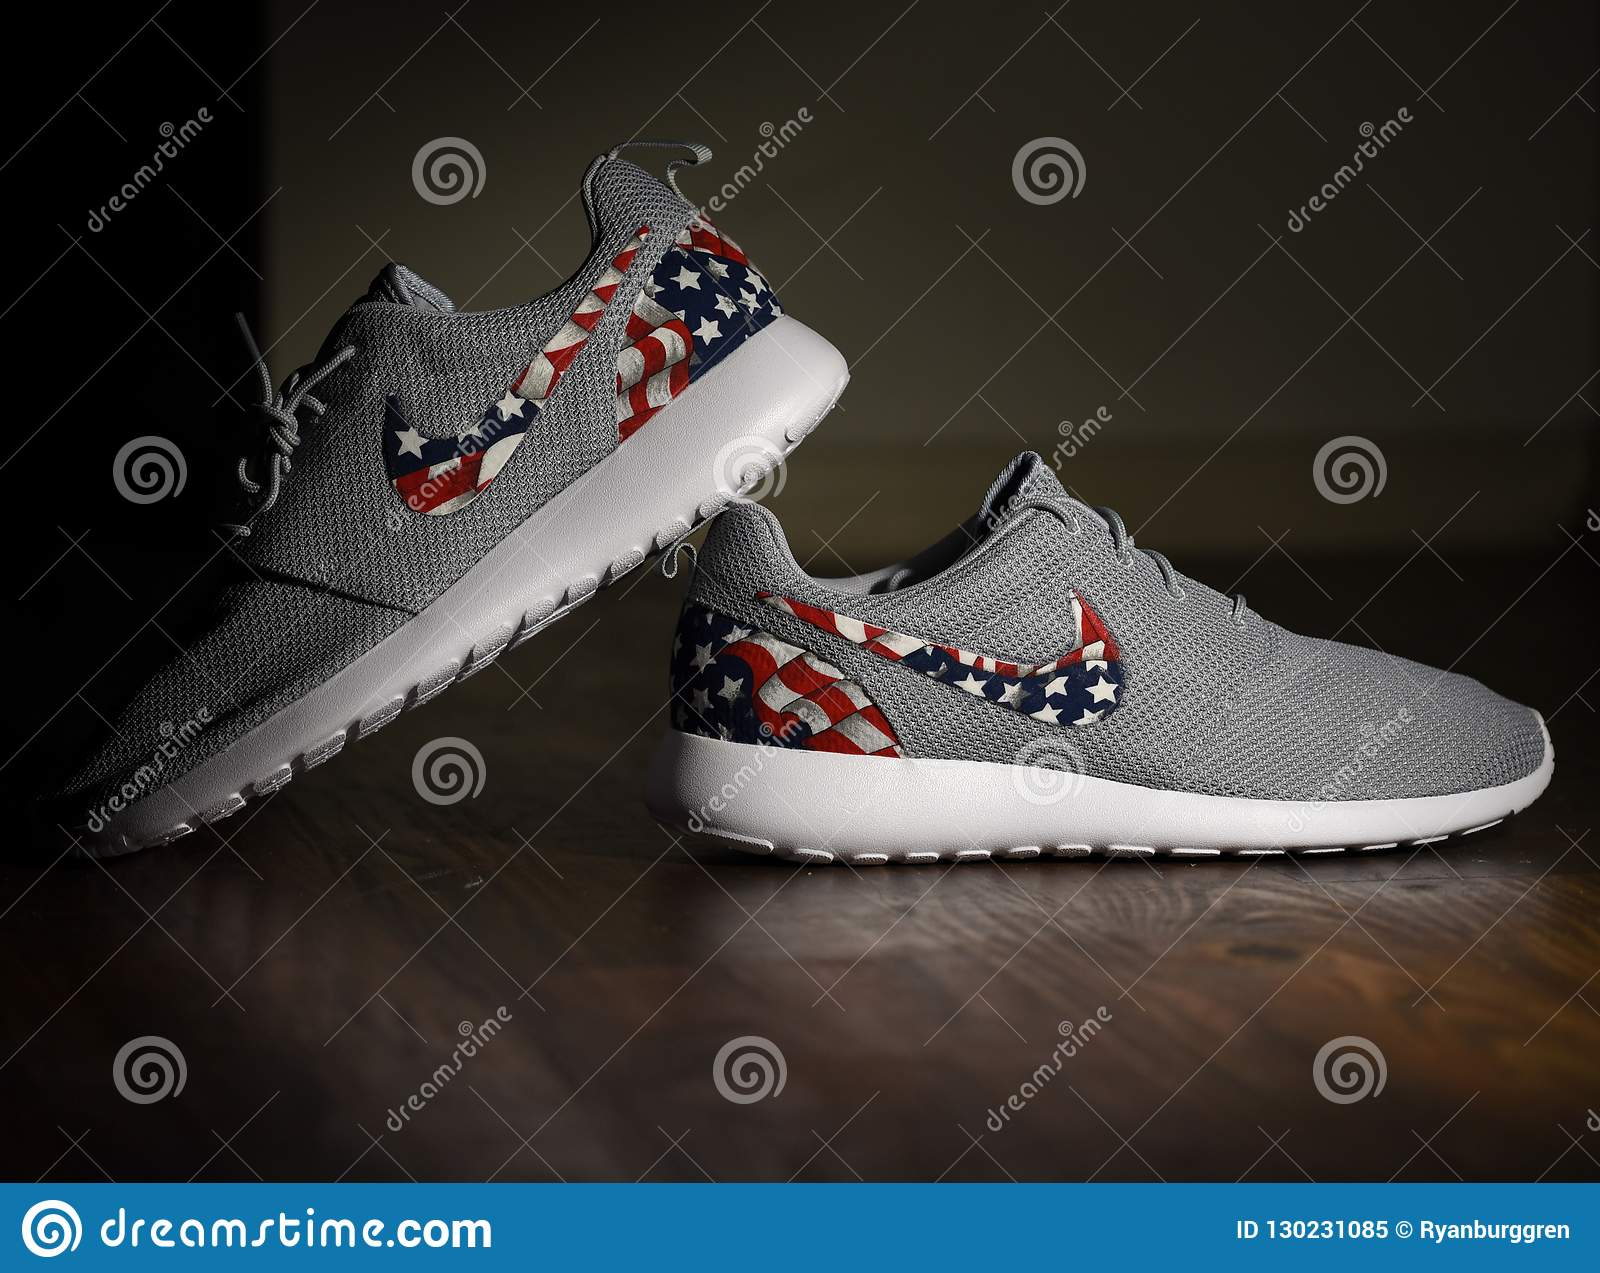 finest selection aecbd 5a2e8 American Flag Nike Roshes